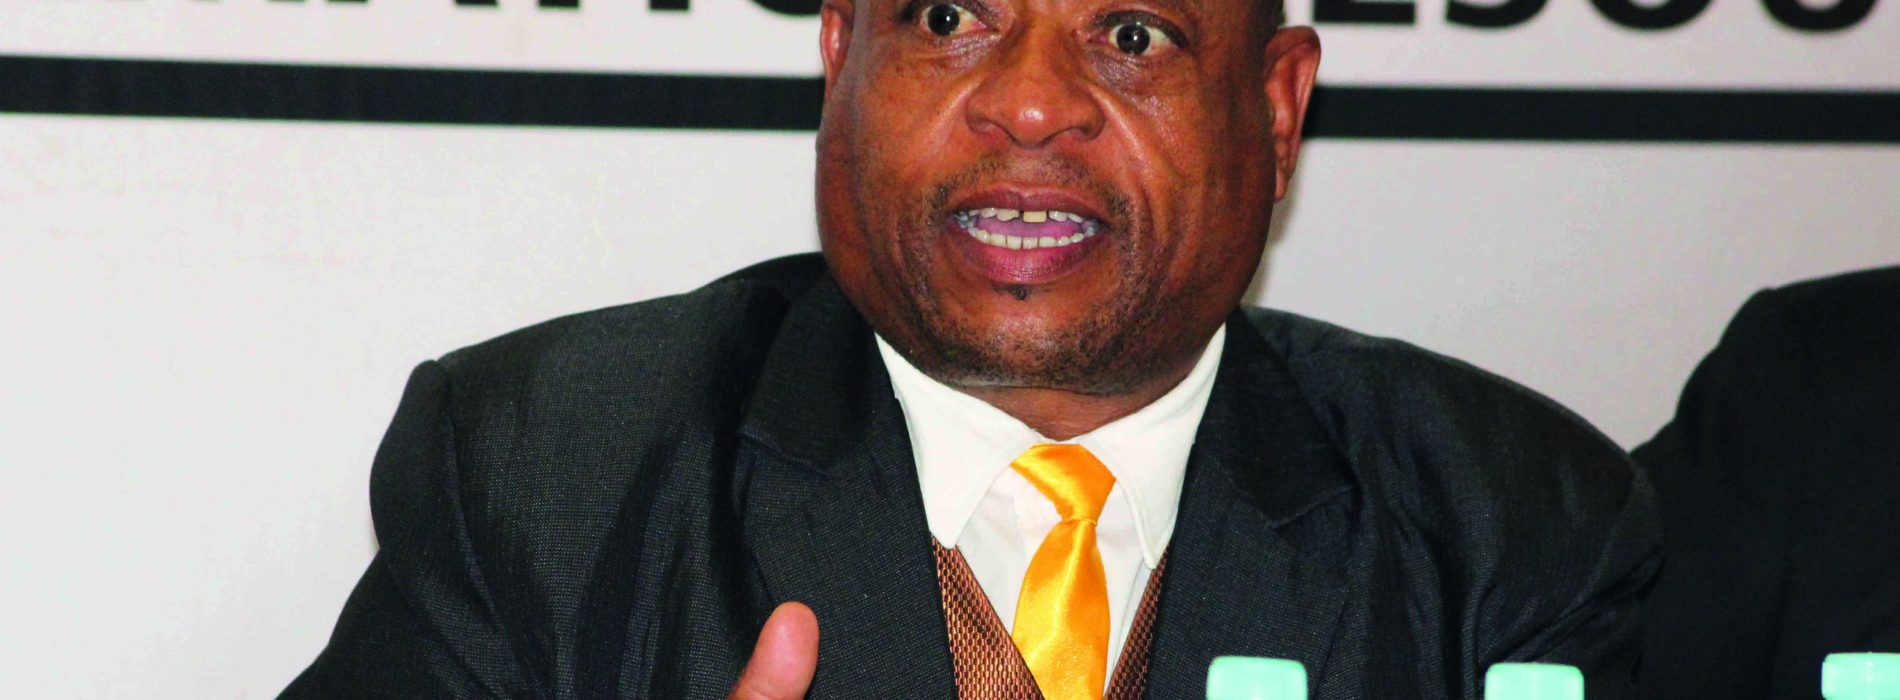 M2 million capital to set up business in Lesotho